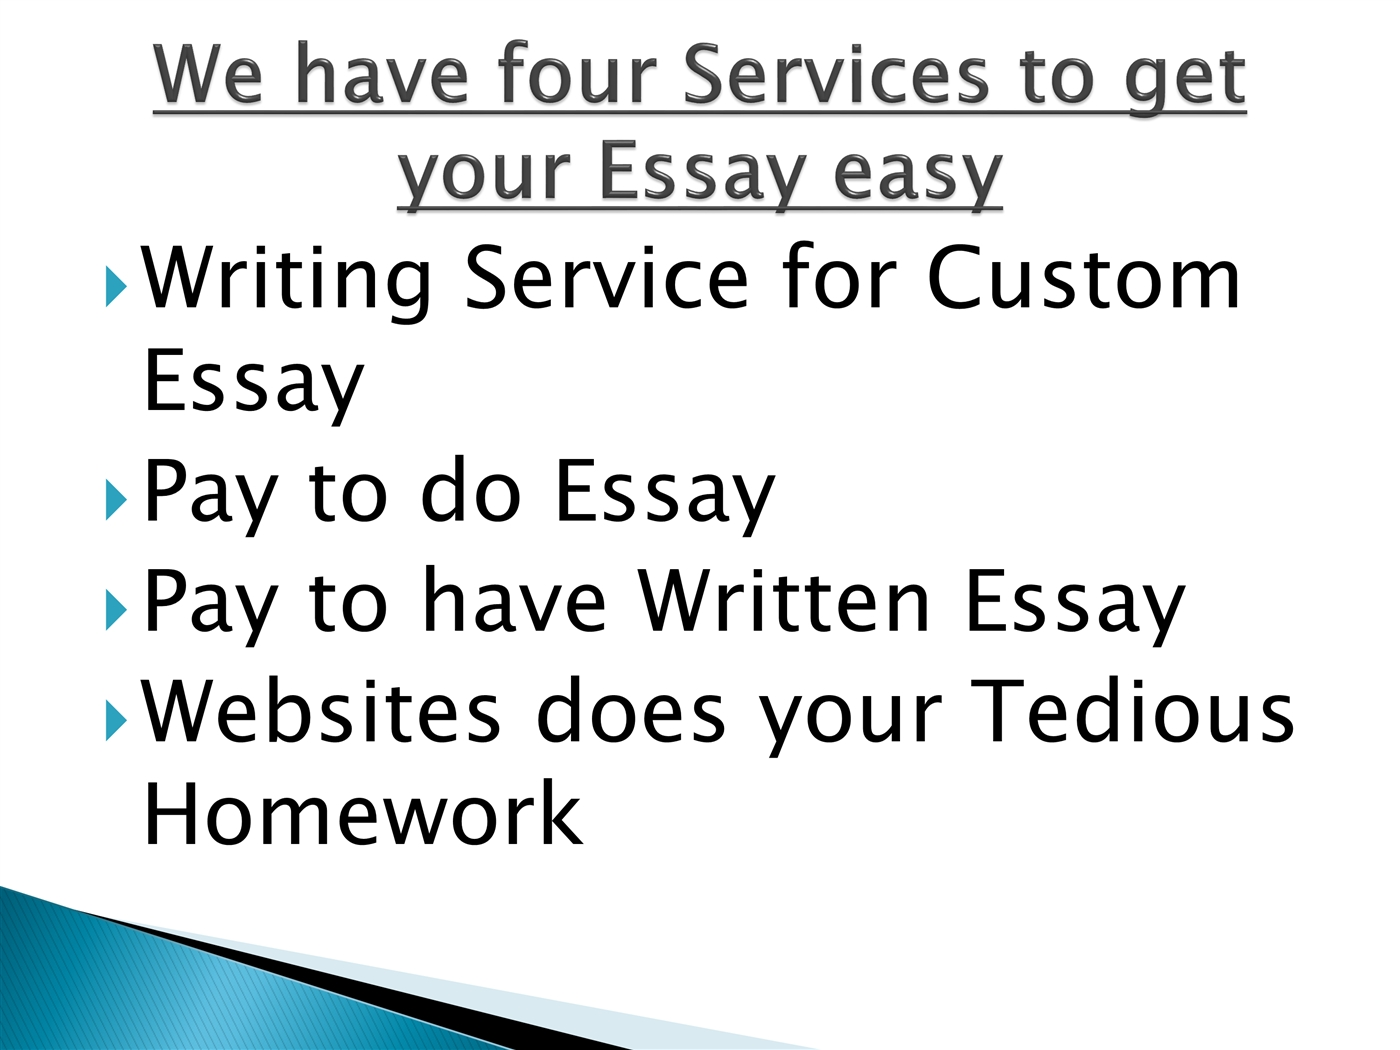 Booth MBA Essay PowerPoint Presentation fxMBAConsulting Booth MBA Essay  PowerPoint Presentation Writing an argument essay powerpoint Contracting  political